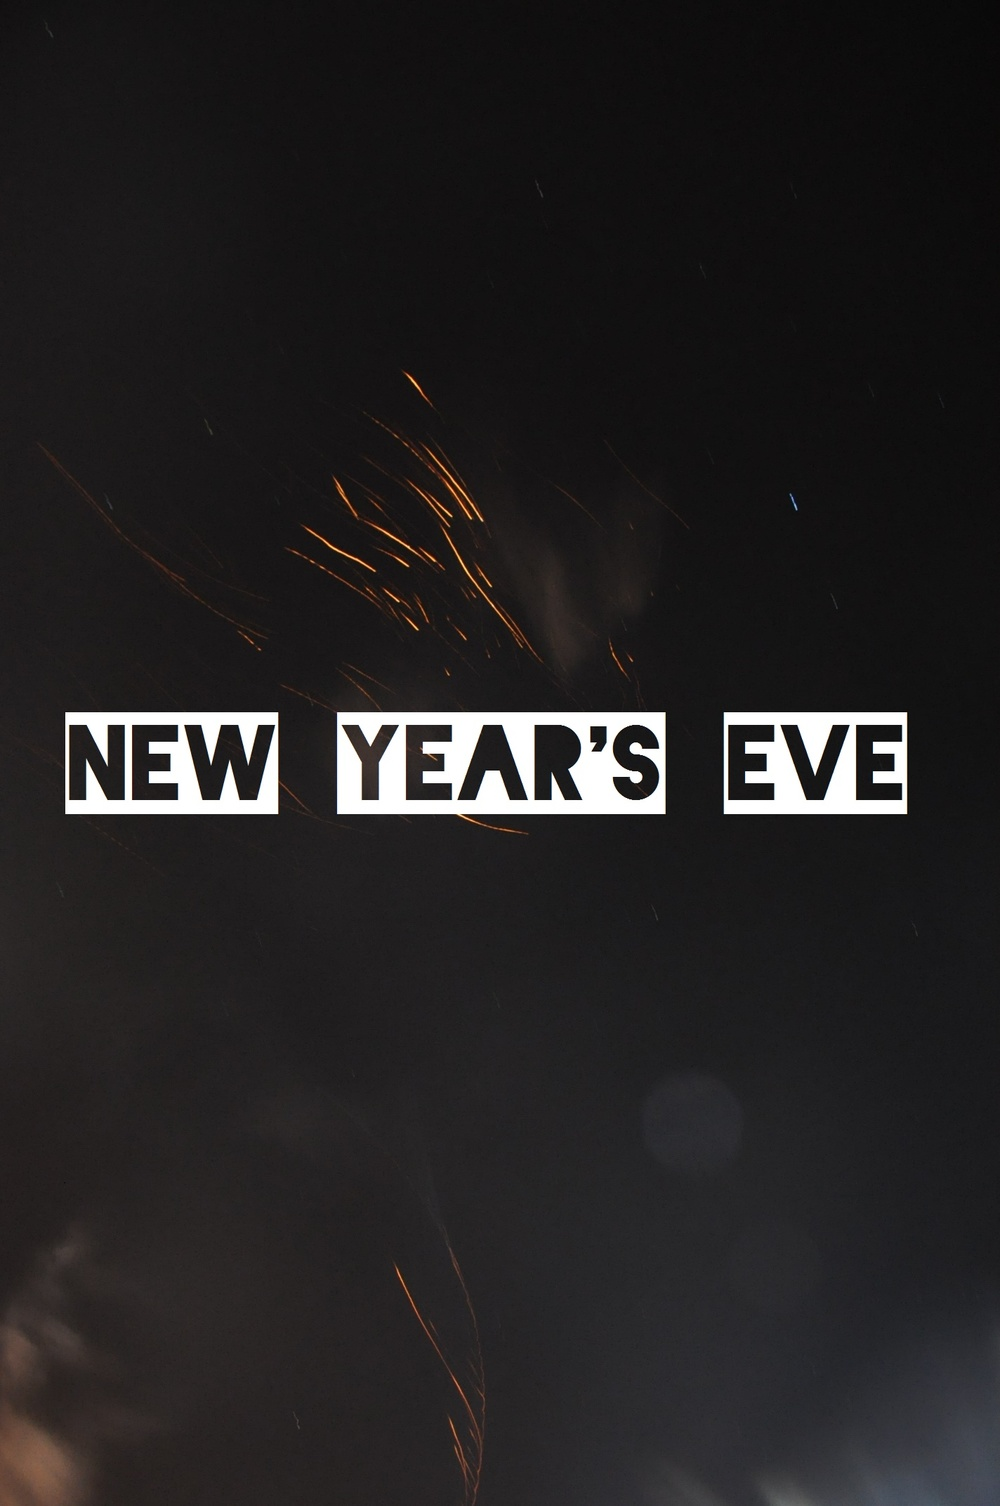 New Year's Eve 2015 – A spontaneous adventure to the beach to watch the fireworks display. A year of feeling alive, ending off with a bang! A Lovely Space   alovelyspace.com